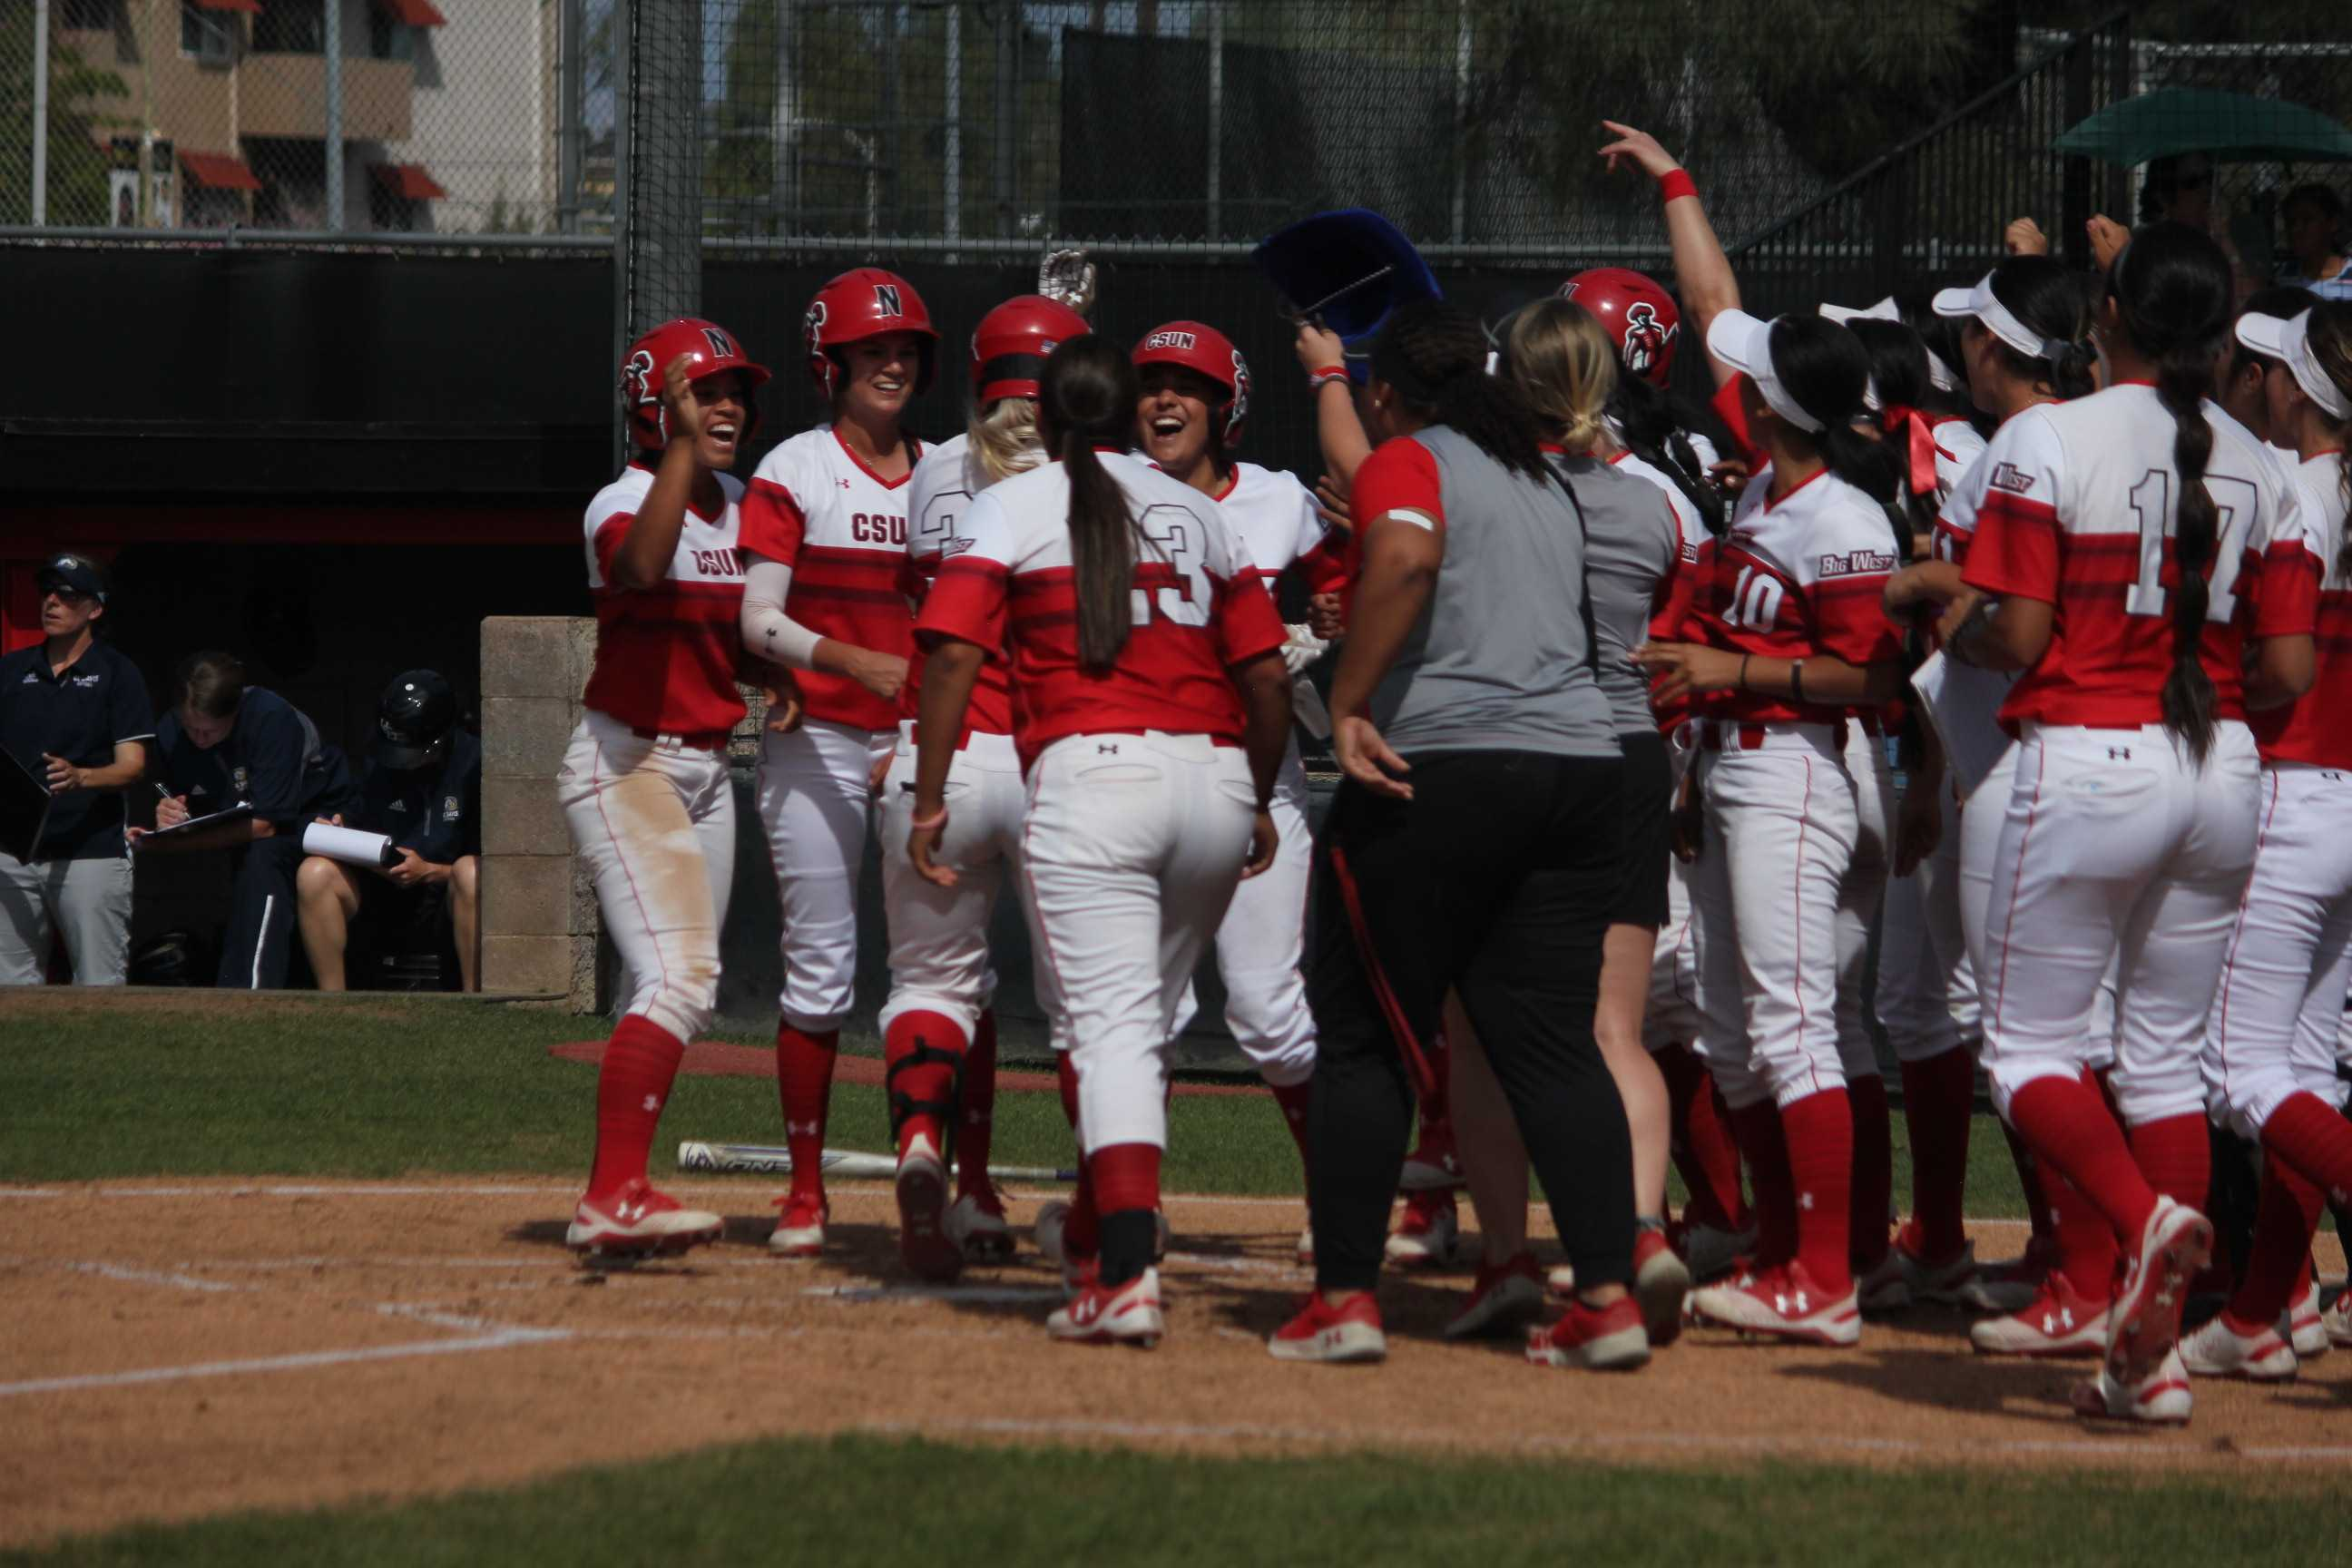 csun softball players in red and white celebrating on home base